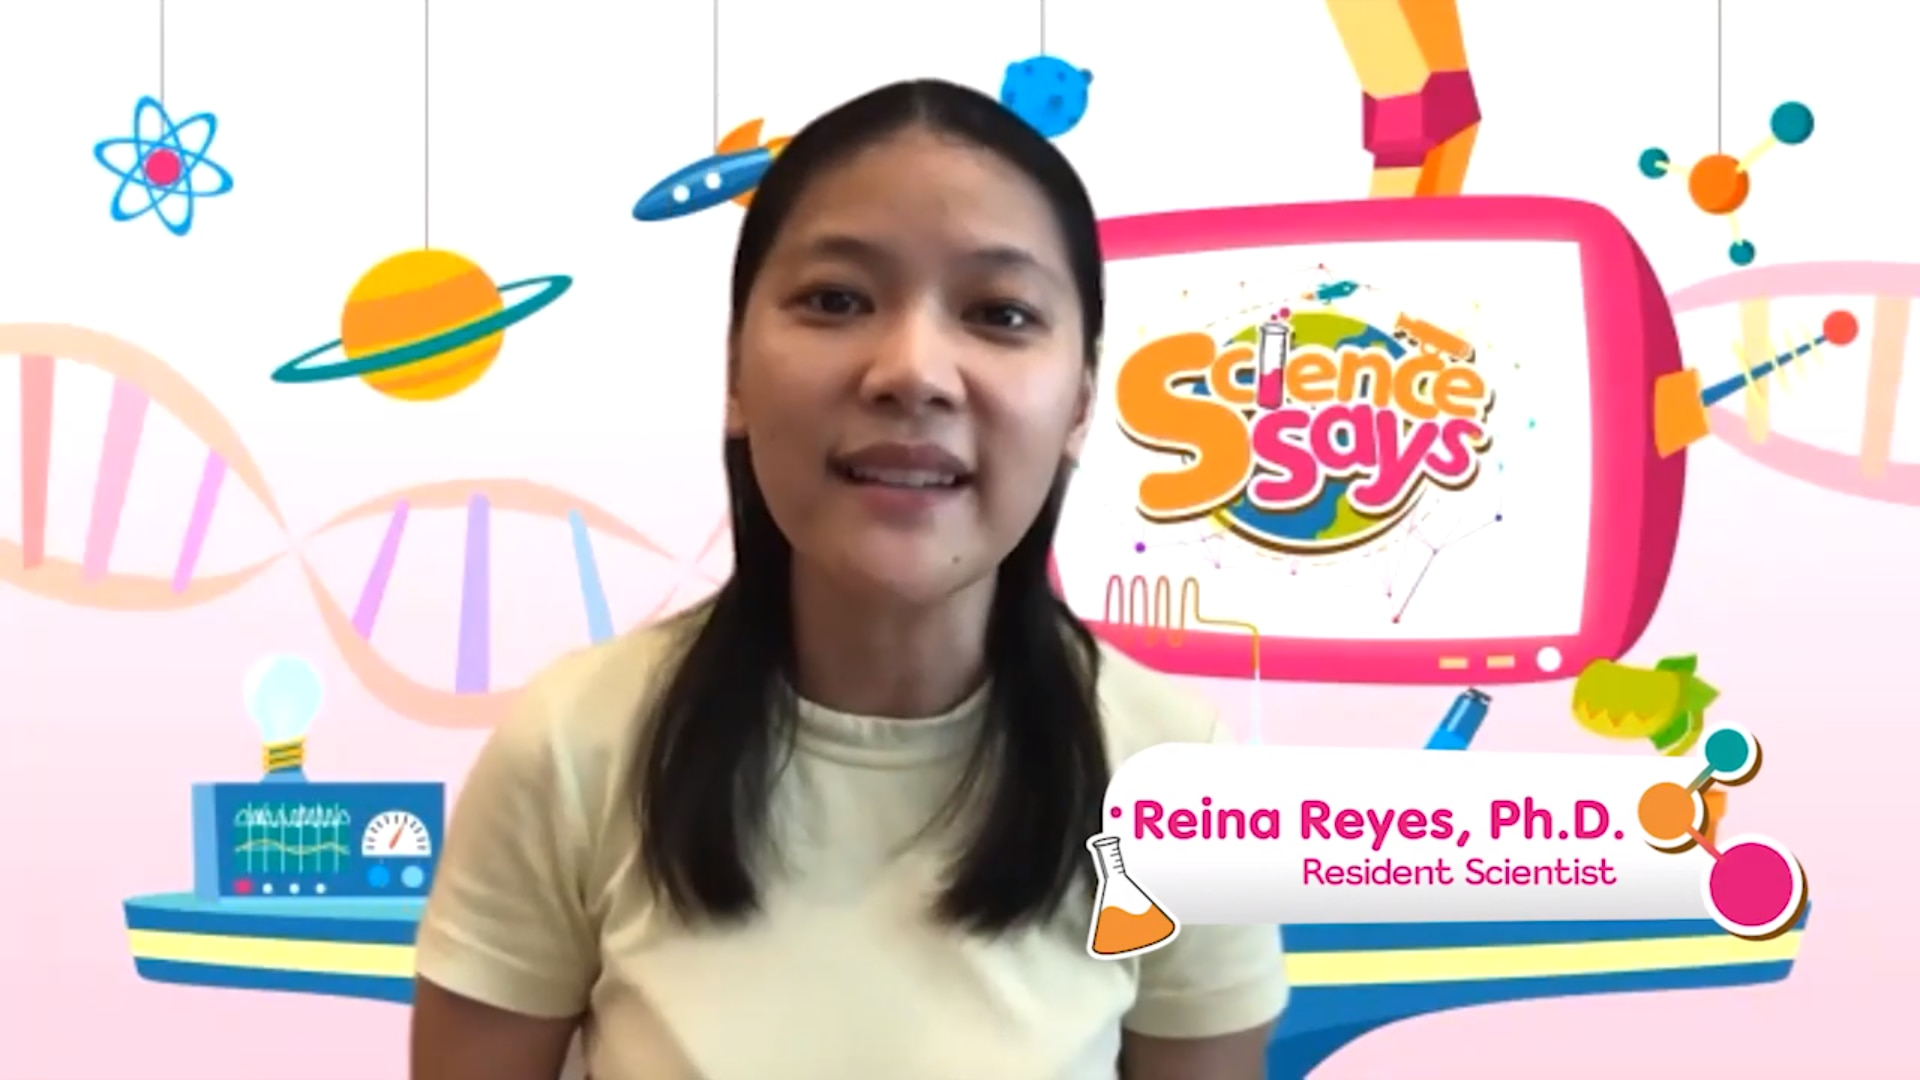 Science Says with Dr  Reina Reyes